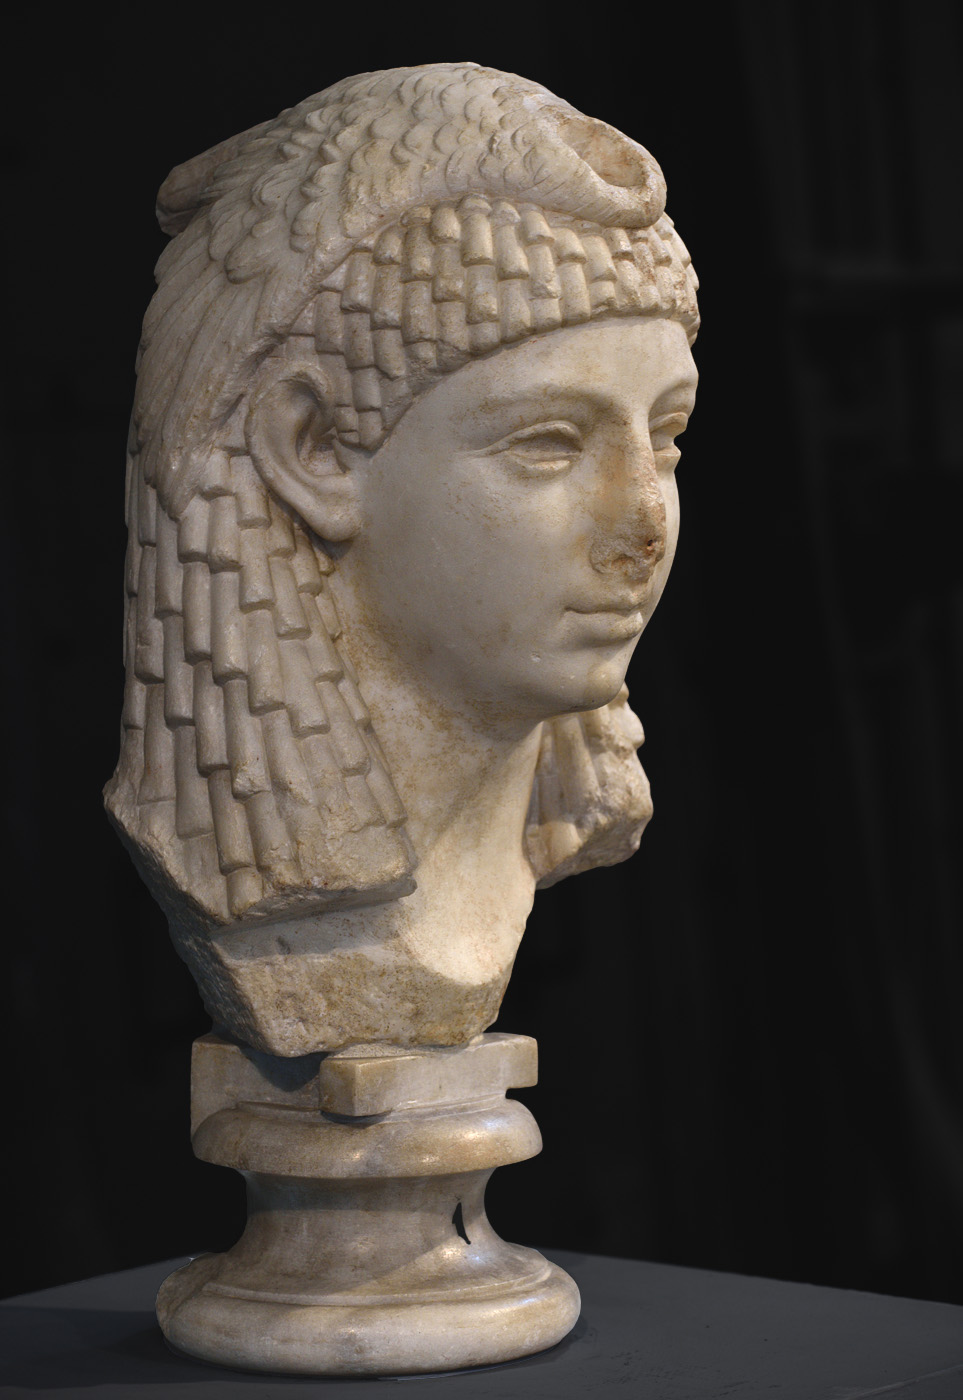 Isis. Pentelic marble. 1st cent. BCE. Inv. No. MC 1154. Rome, Capitoline Museums, Museum Montemartini (Centrale Montemartini), II. 42